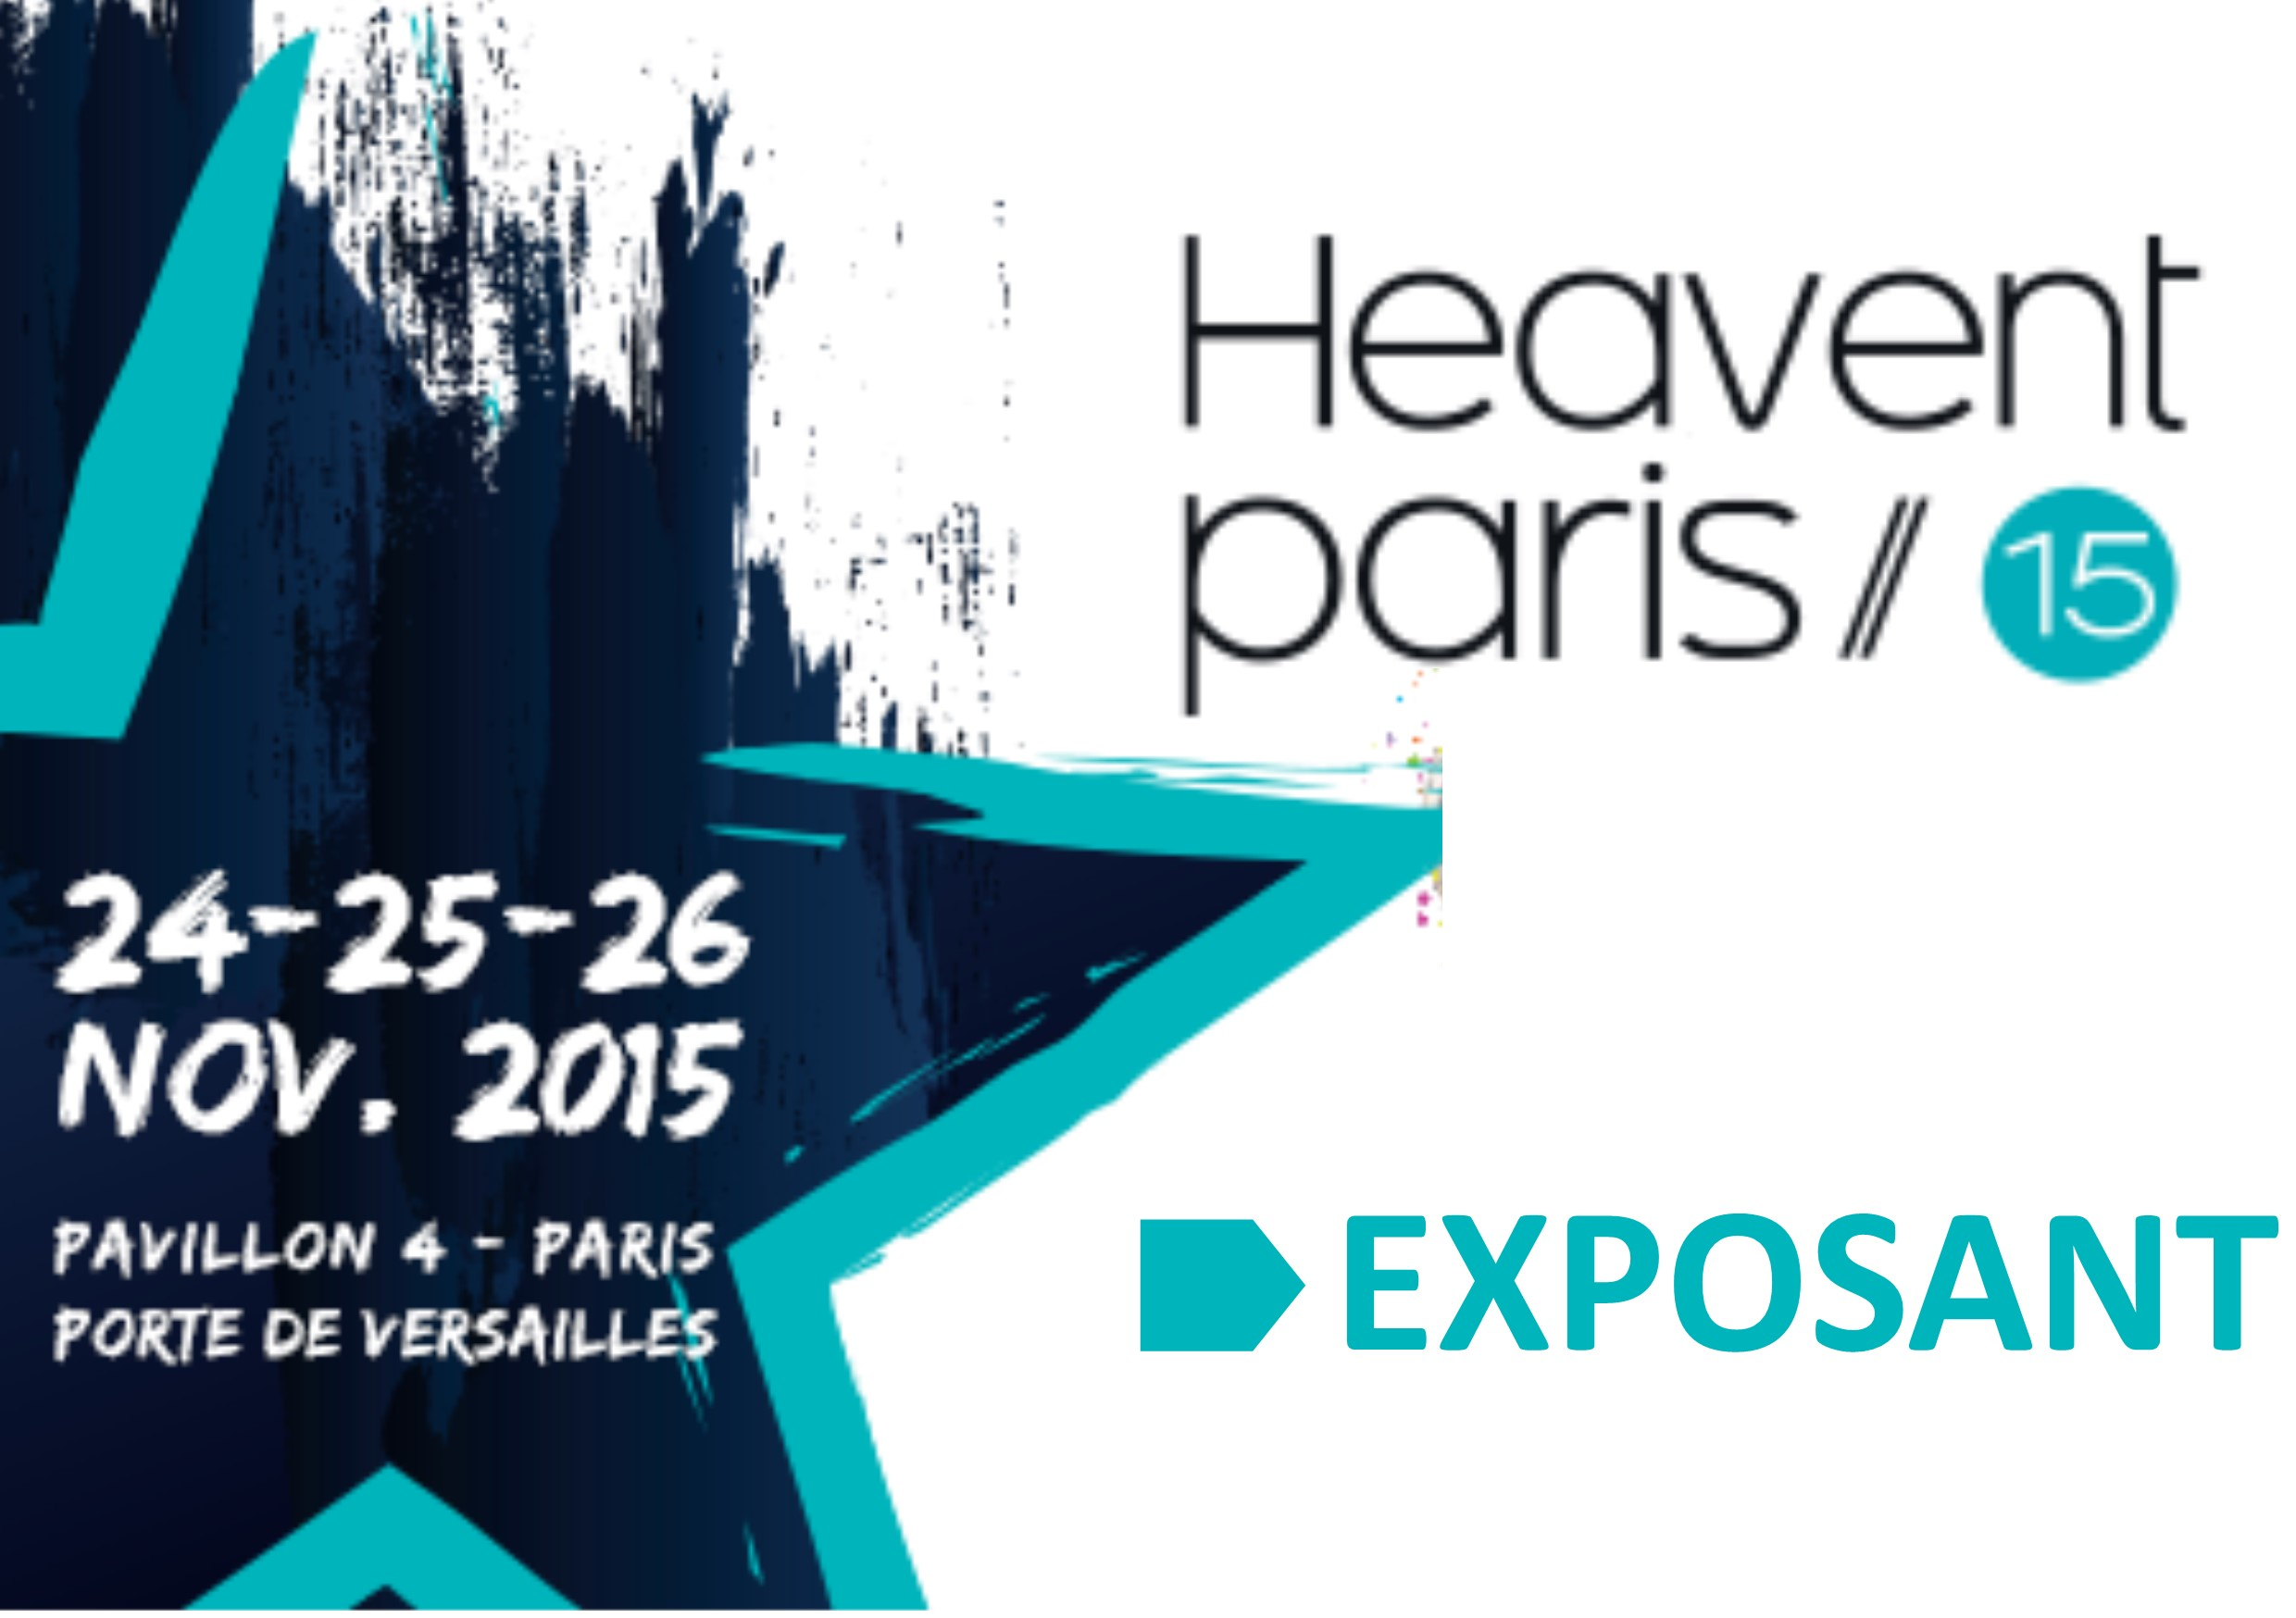 Salon Heavent 2015 Exposant